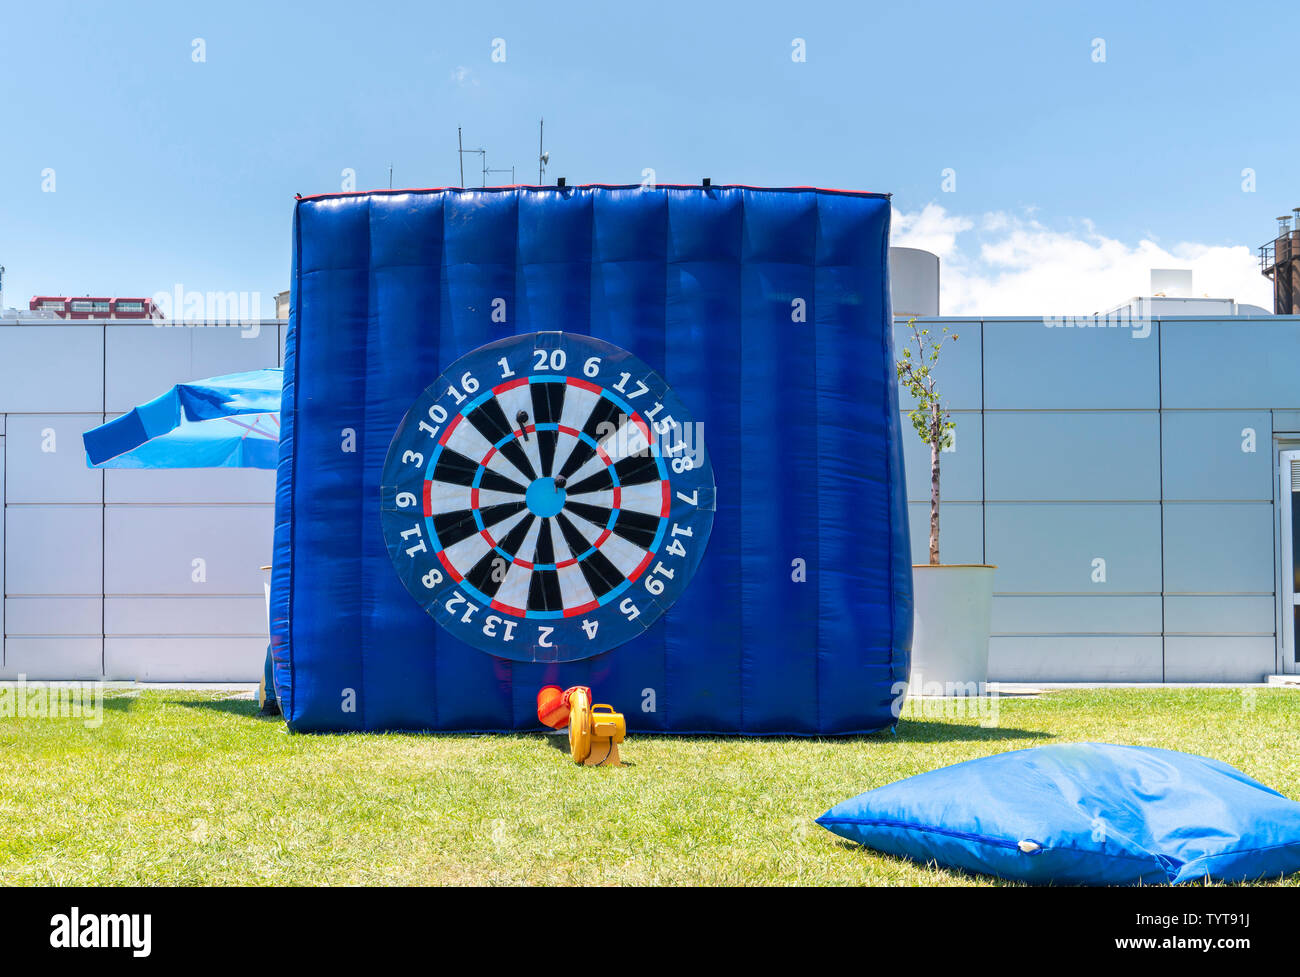 Giant inflatable dart board in outside/outdoor. - Stock Image